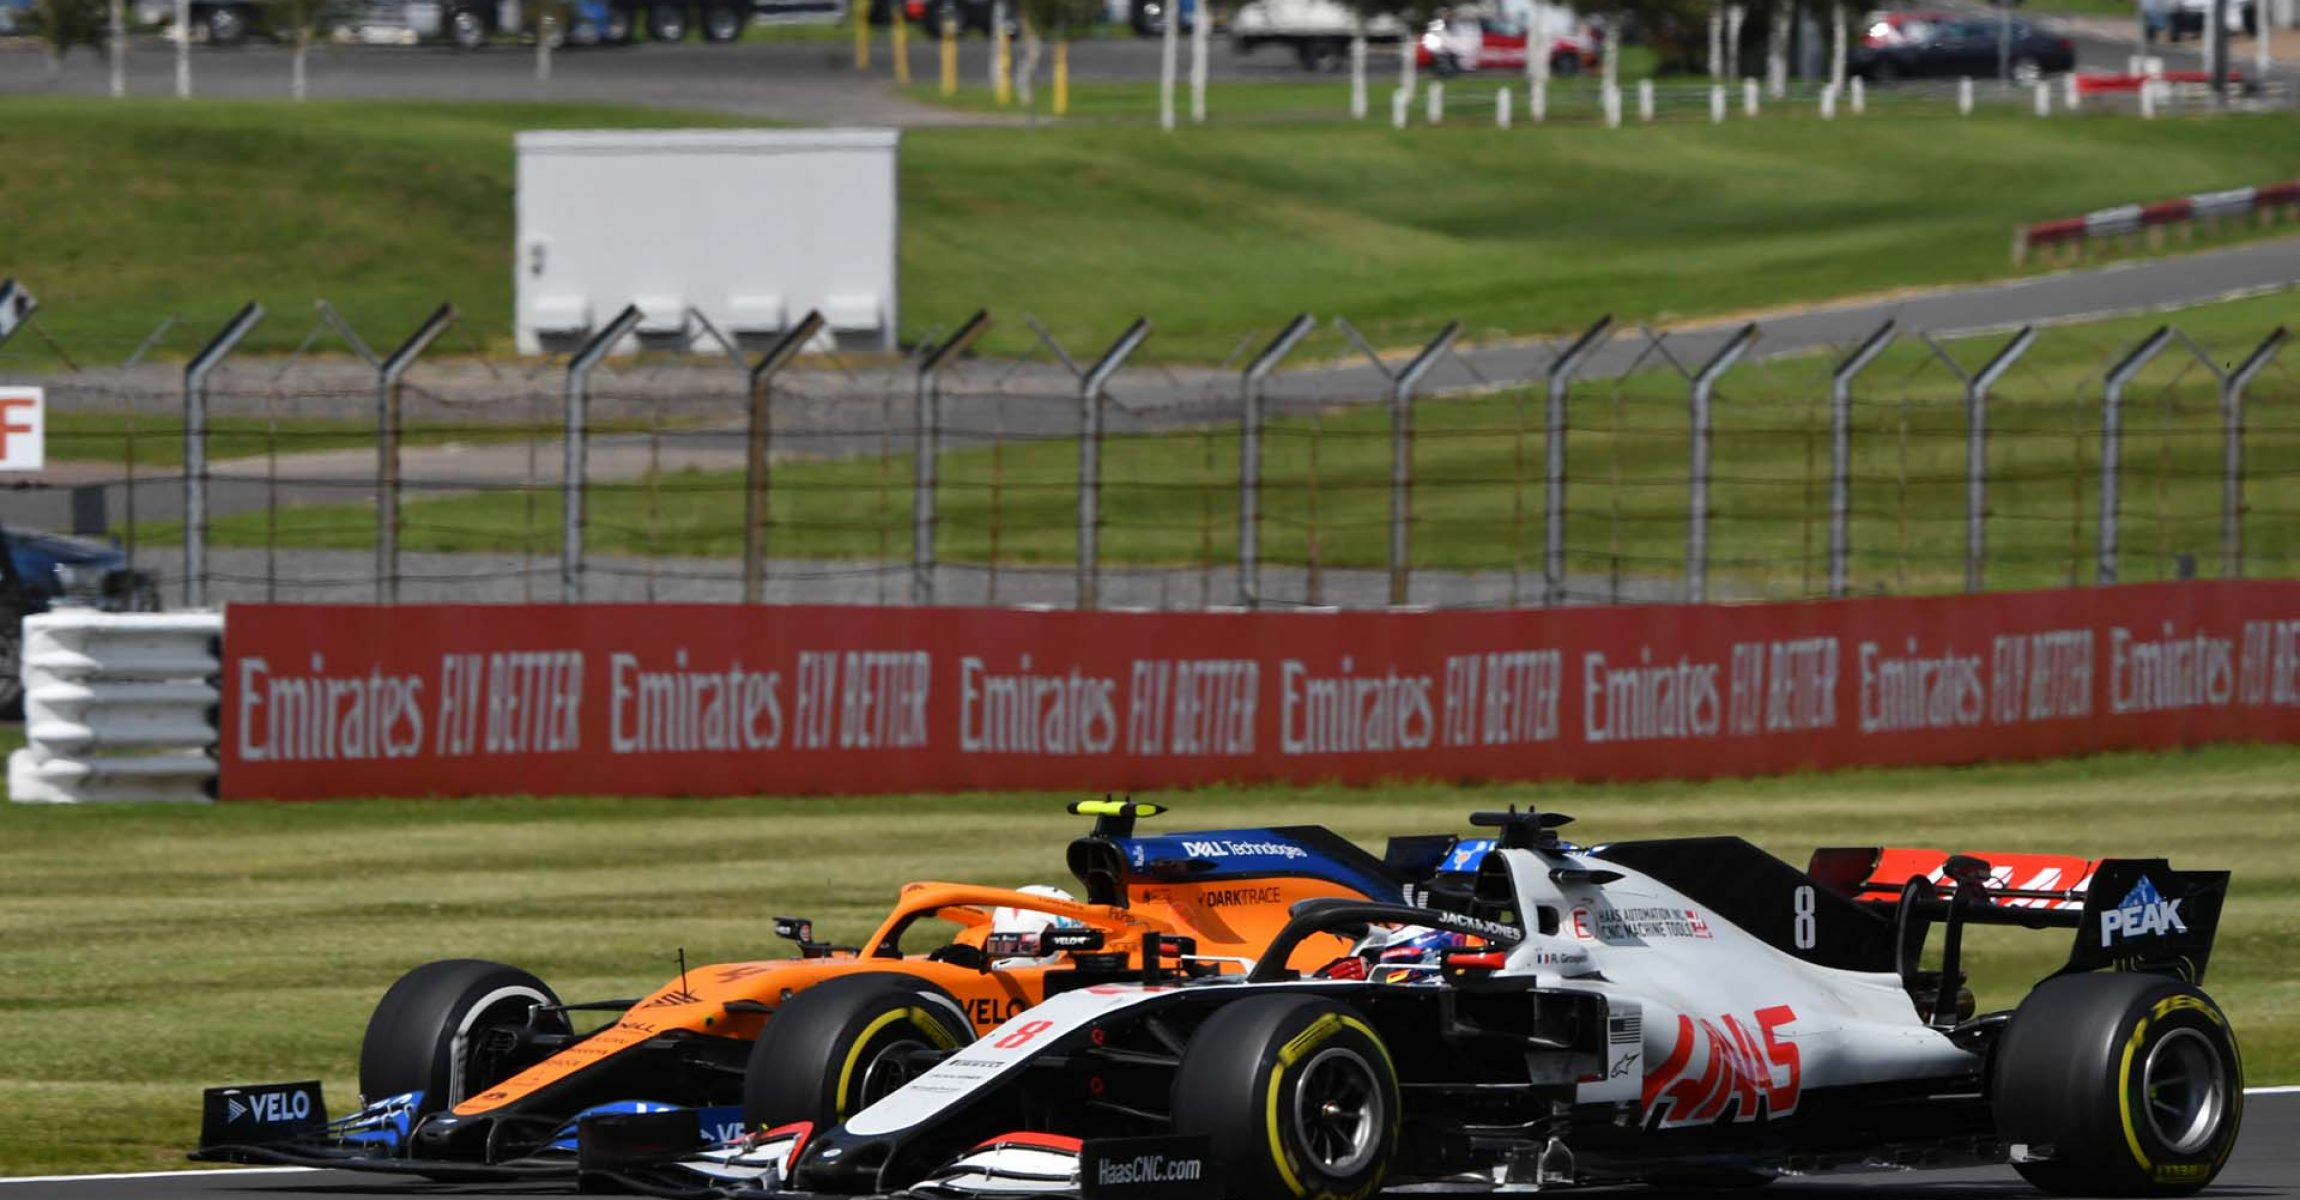 SILVERSTONE, UNITED KINGDOM - AUGUST 02: Lando Norris, McLaren MCL35, battles with Romain Grosjean, Haas VF-20 during the British GP at Silverstone on Sunday August 02, 2020 in Northamptonshire, United Kingdom. (Photo by Mark Sutton / LAT Images)